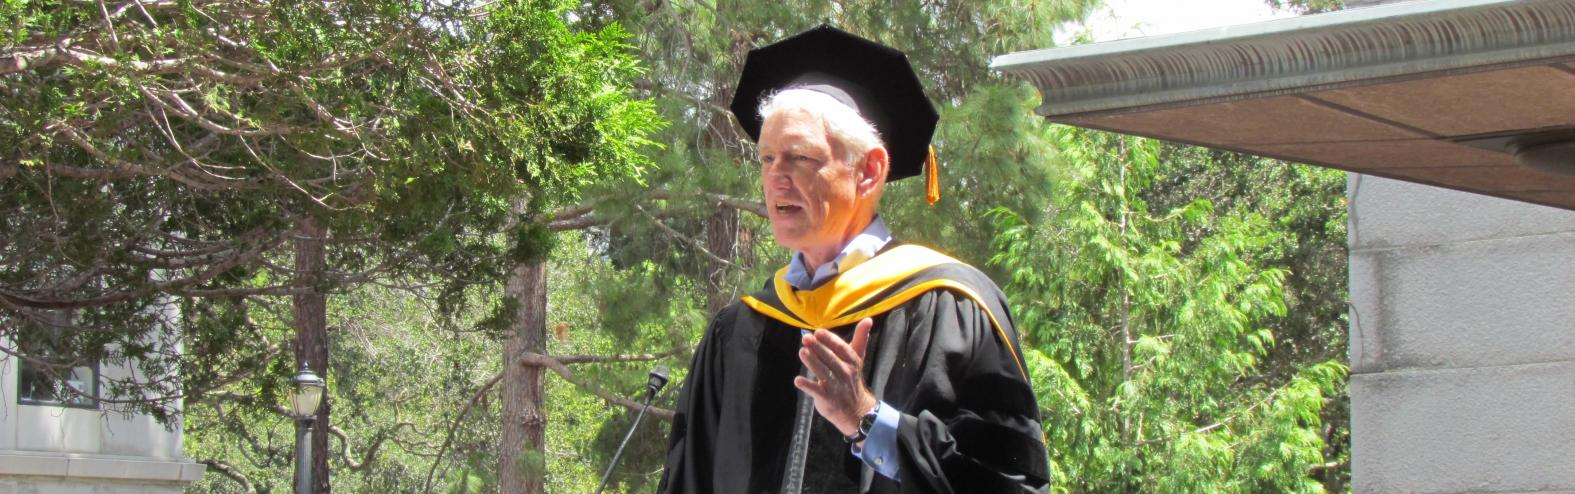 The 2016 commencement keynote speaker was Peter Norvig, Google's director of research